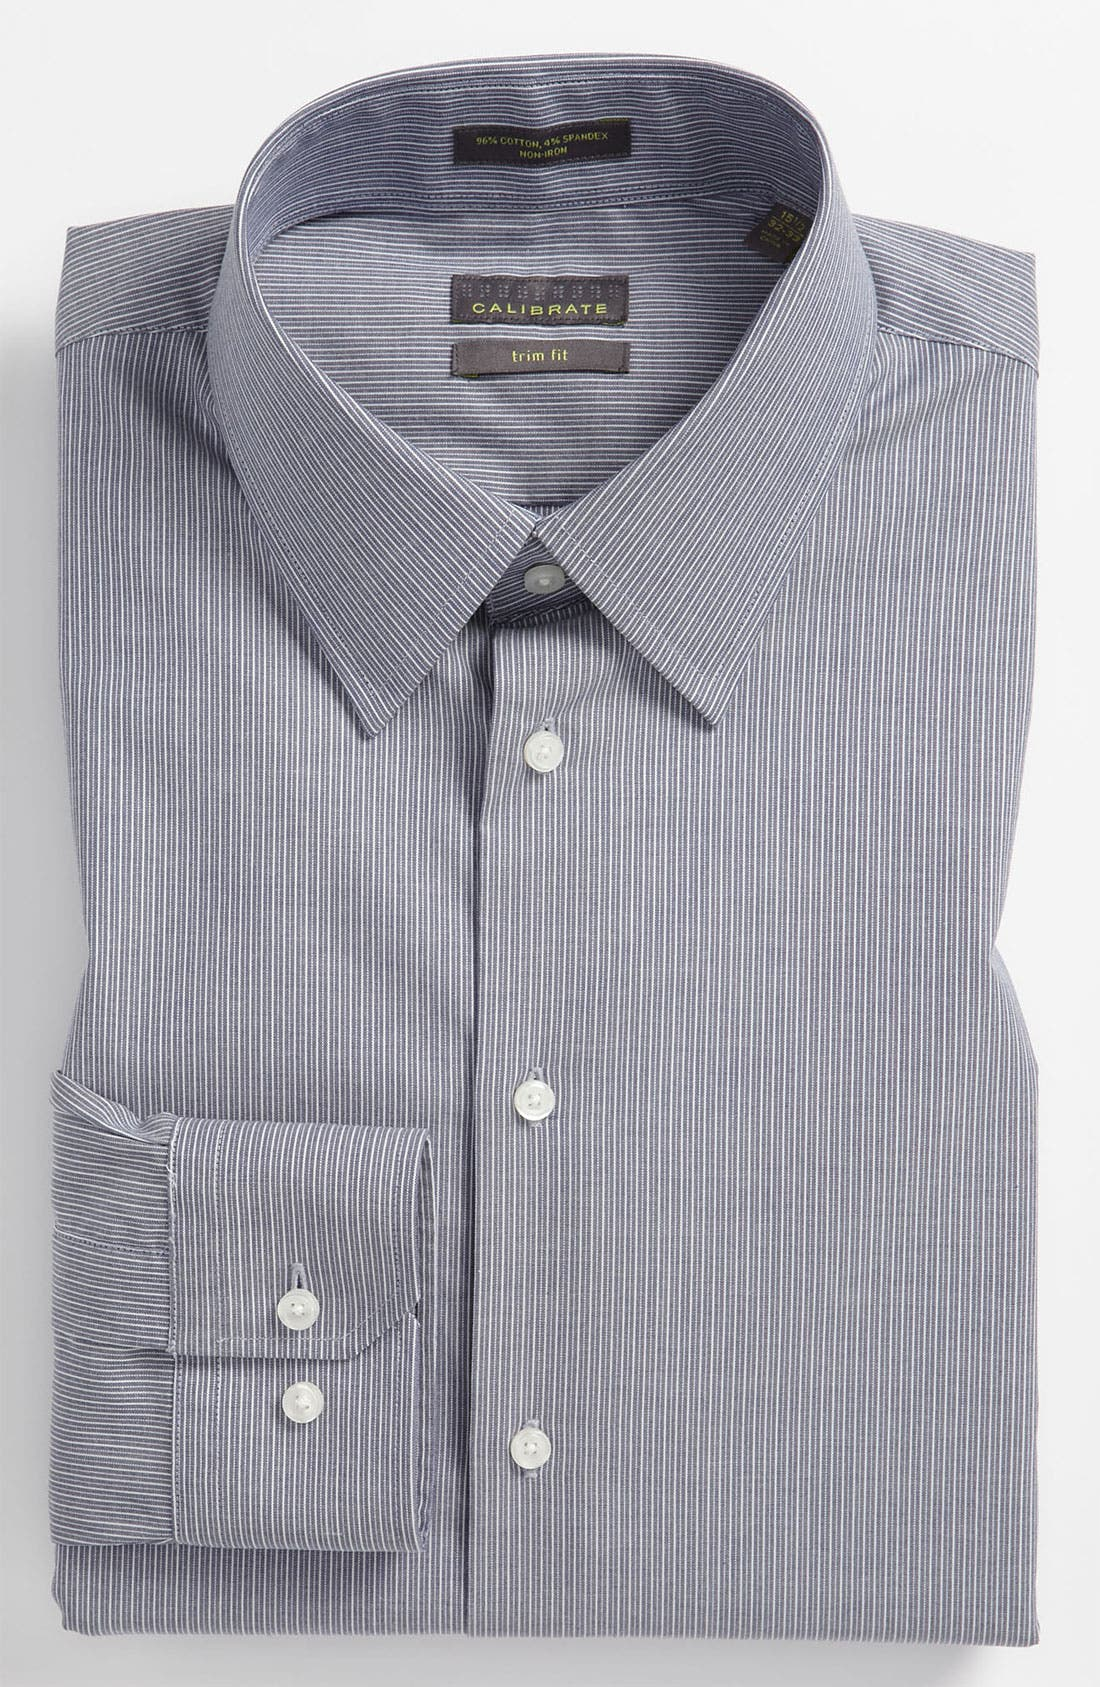 Alternate Image 1 Selected - Calibrate Trim Fit Non Iron Dress Shirt